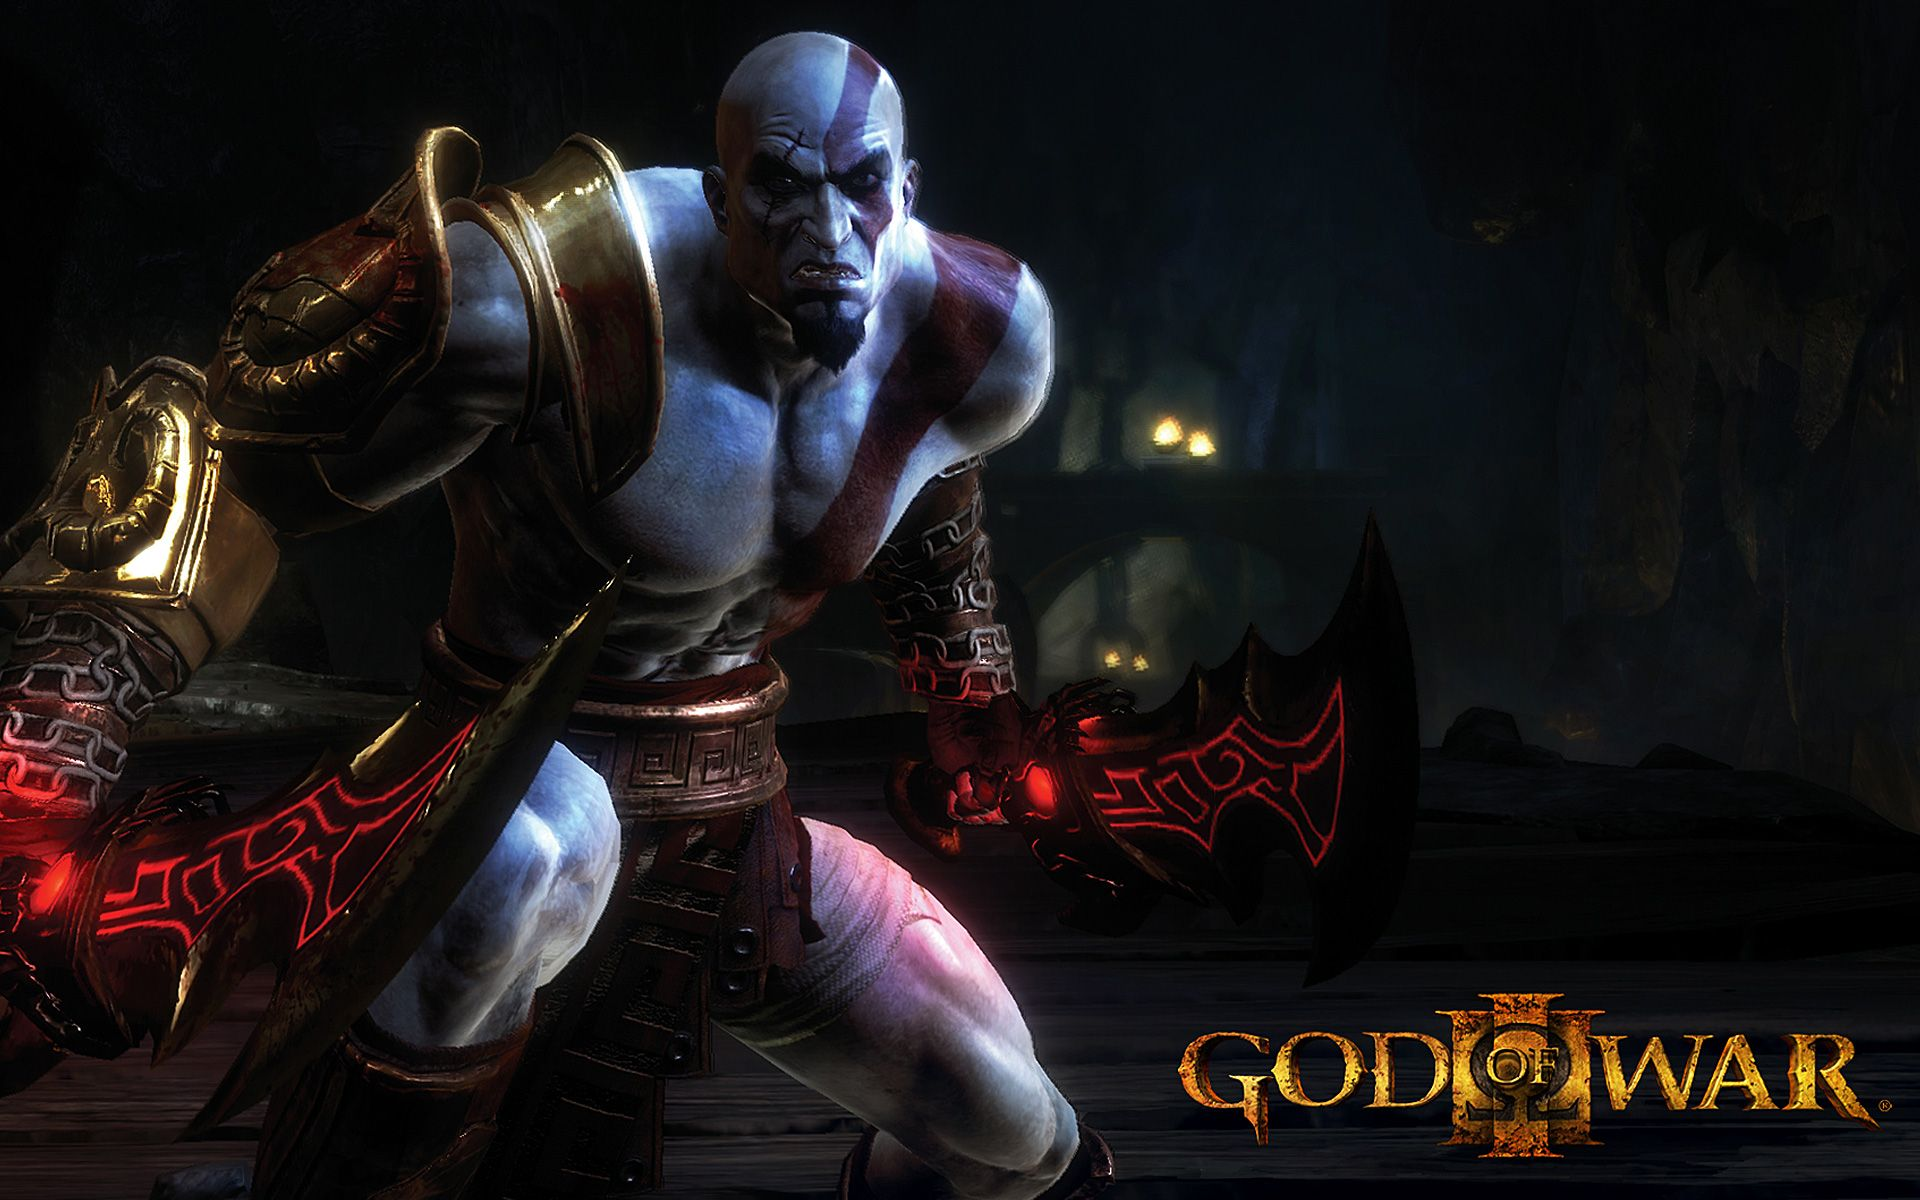 kratos with a sword *** of war wallpaper game wallpapers hd